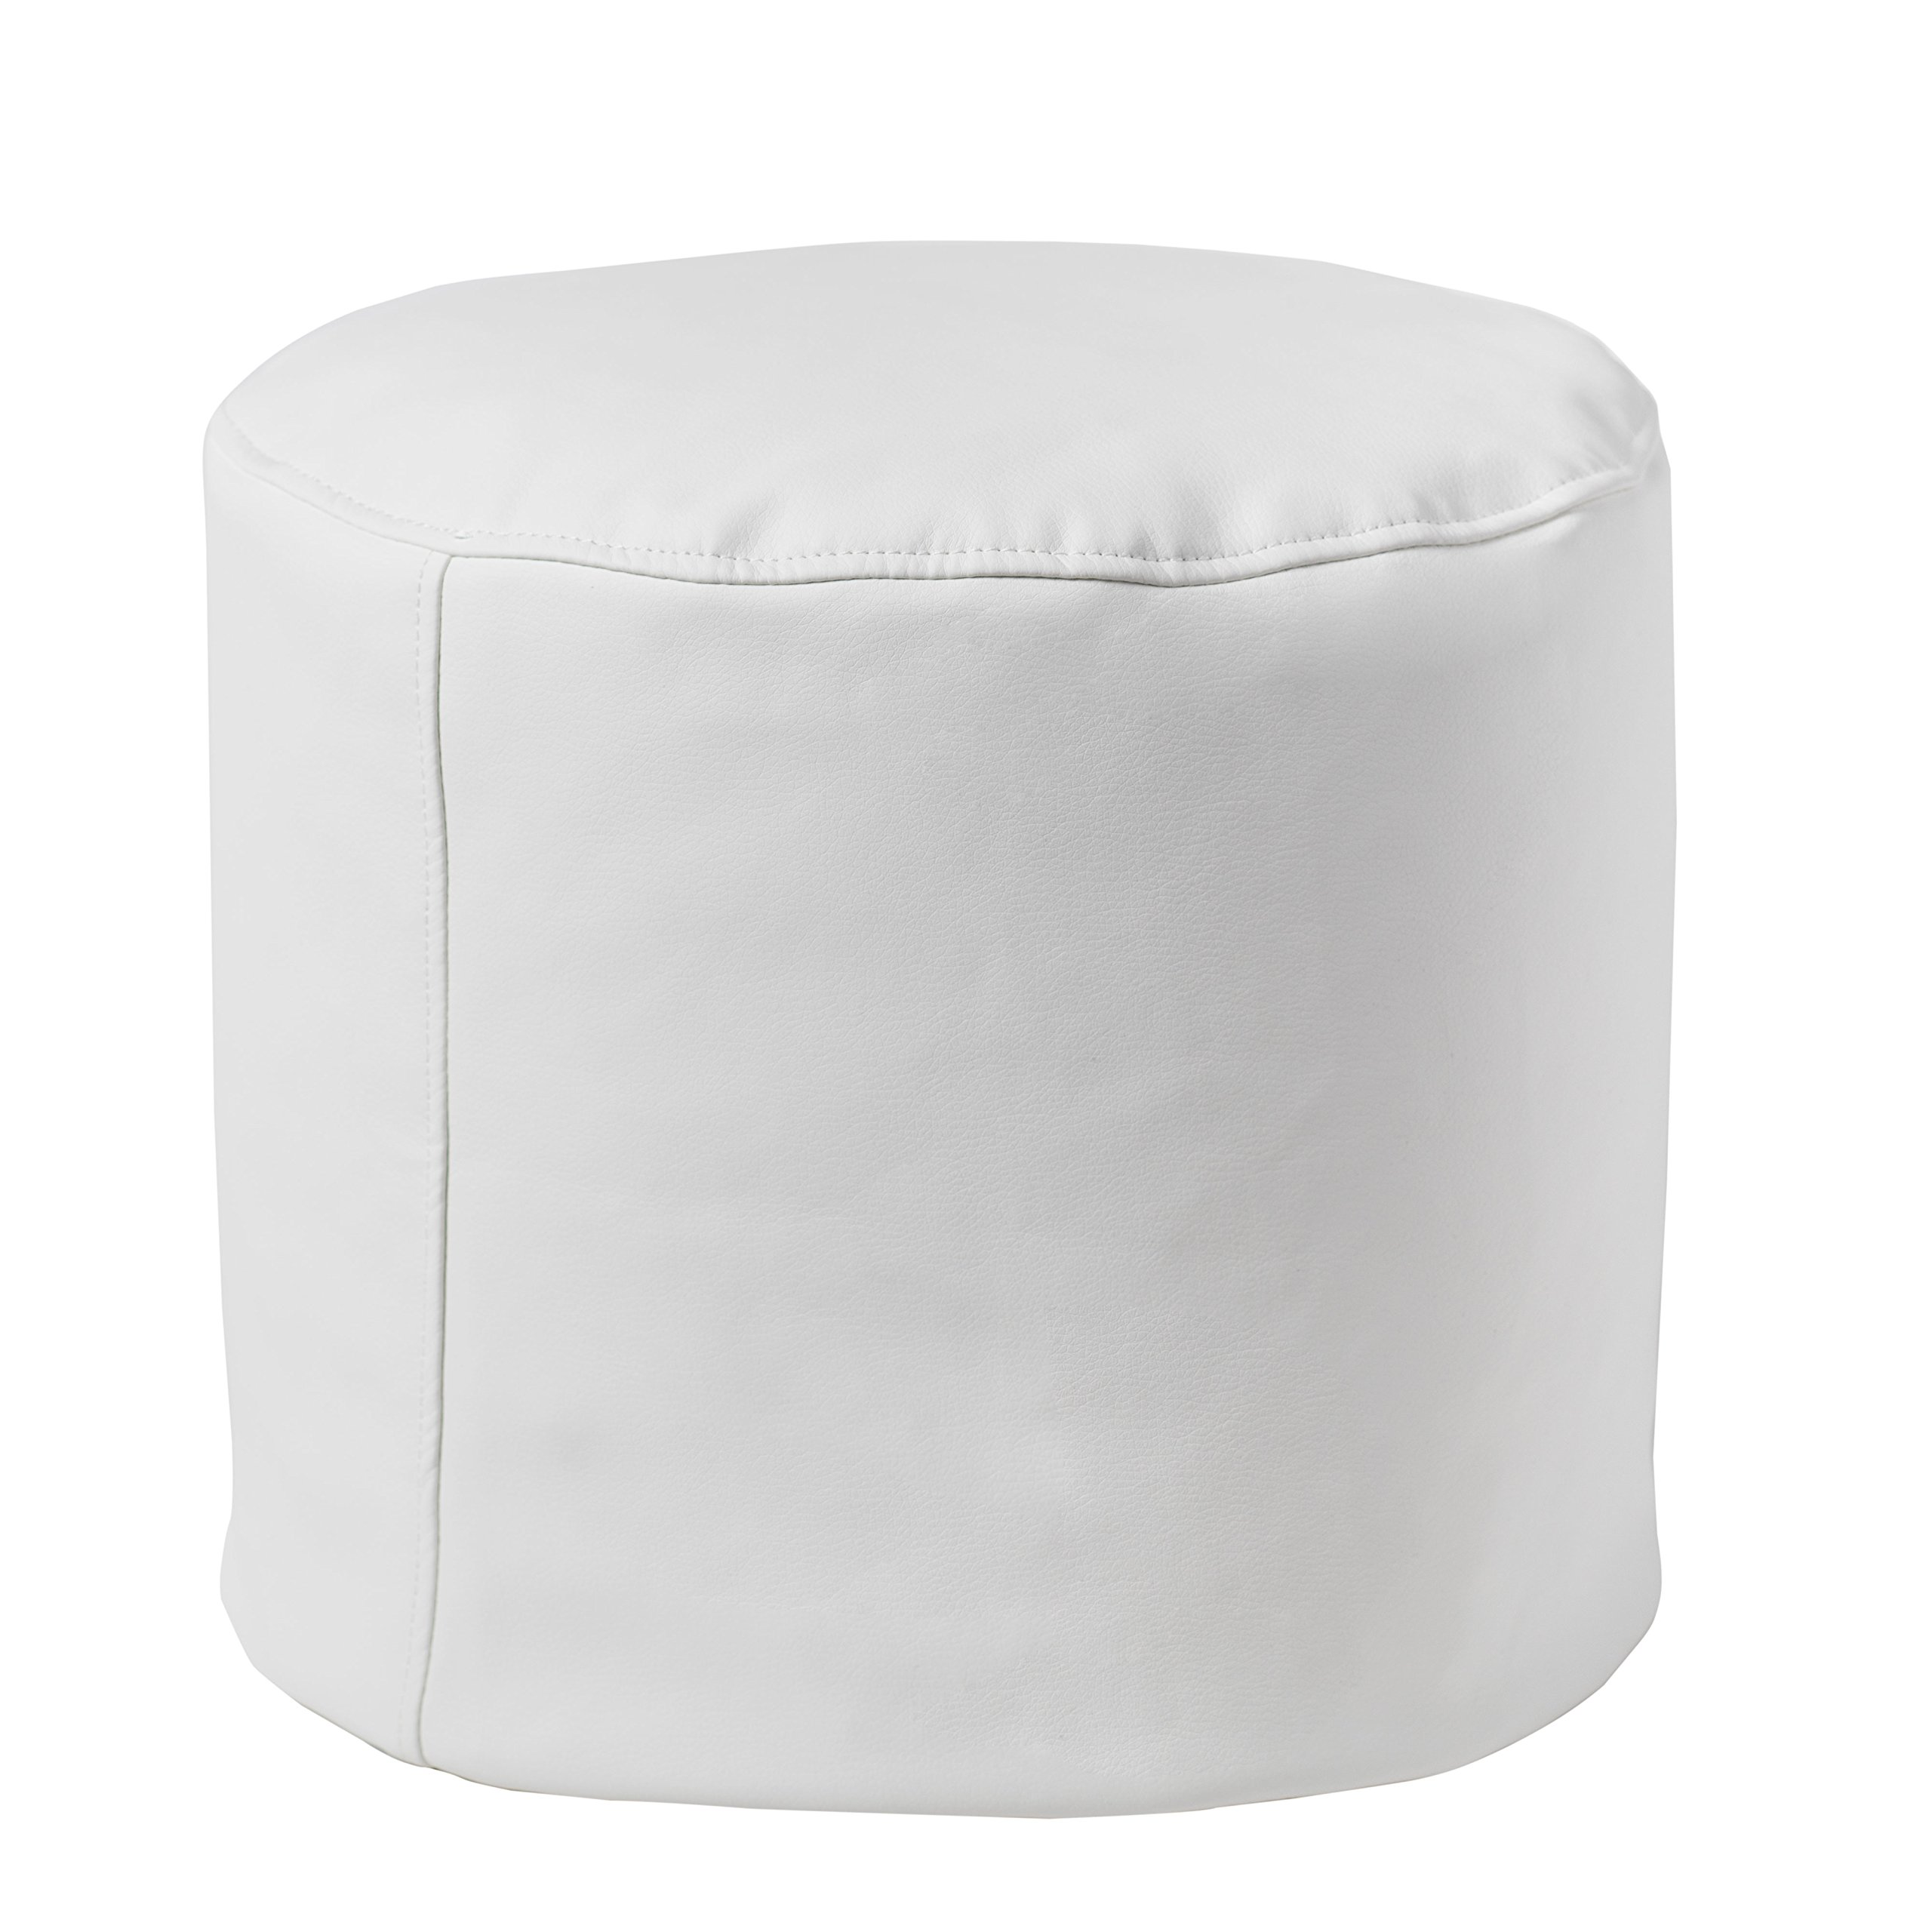 Small Round Ottoman Pouf Foot Stool, Portable White Footstool Perfect For Adults, Kids, and Massage